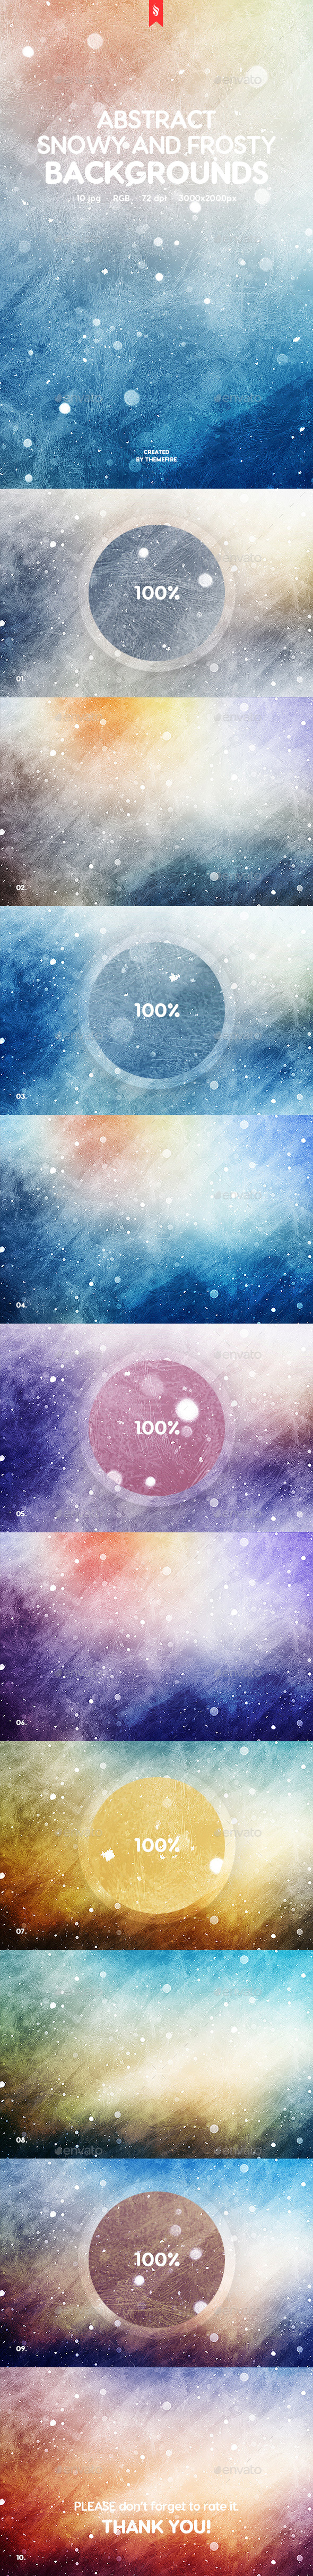 Snowy and Frosty Backgrounds - Backgrounds Graphics